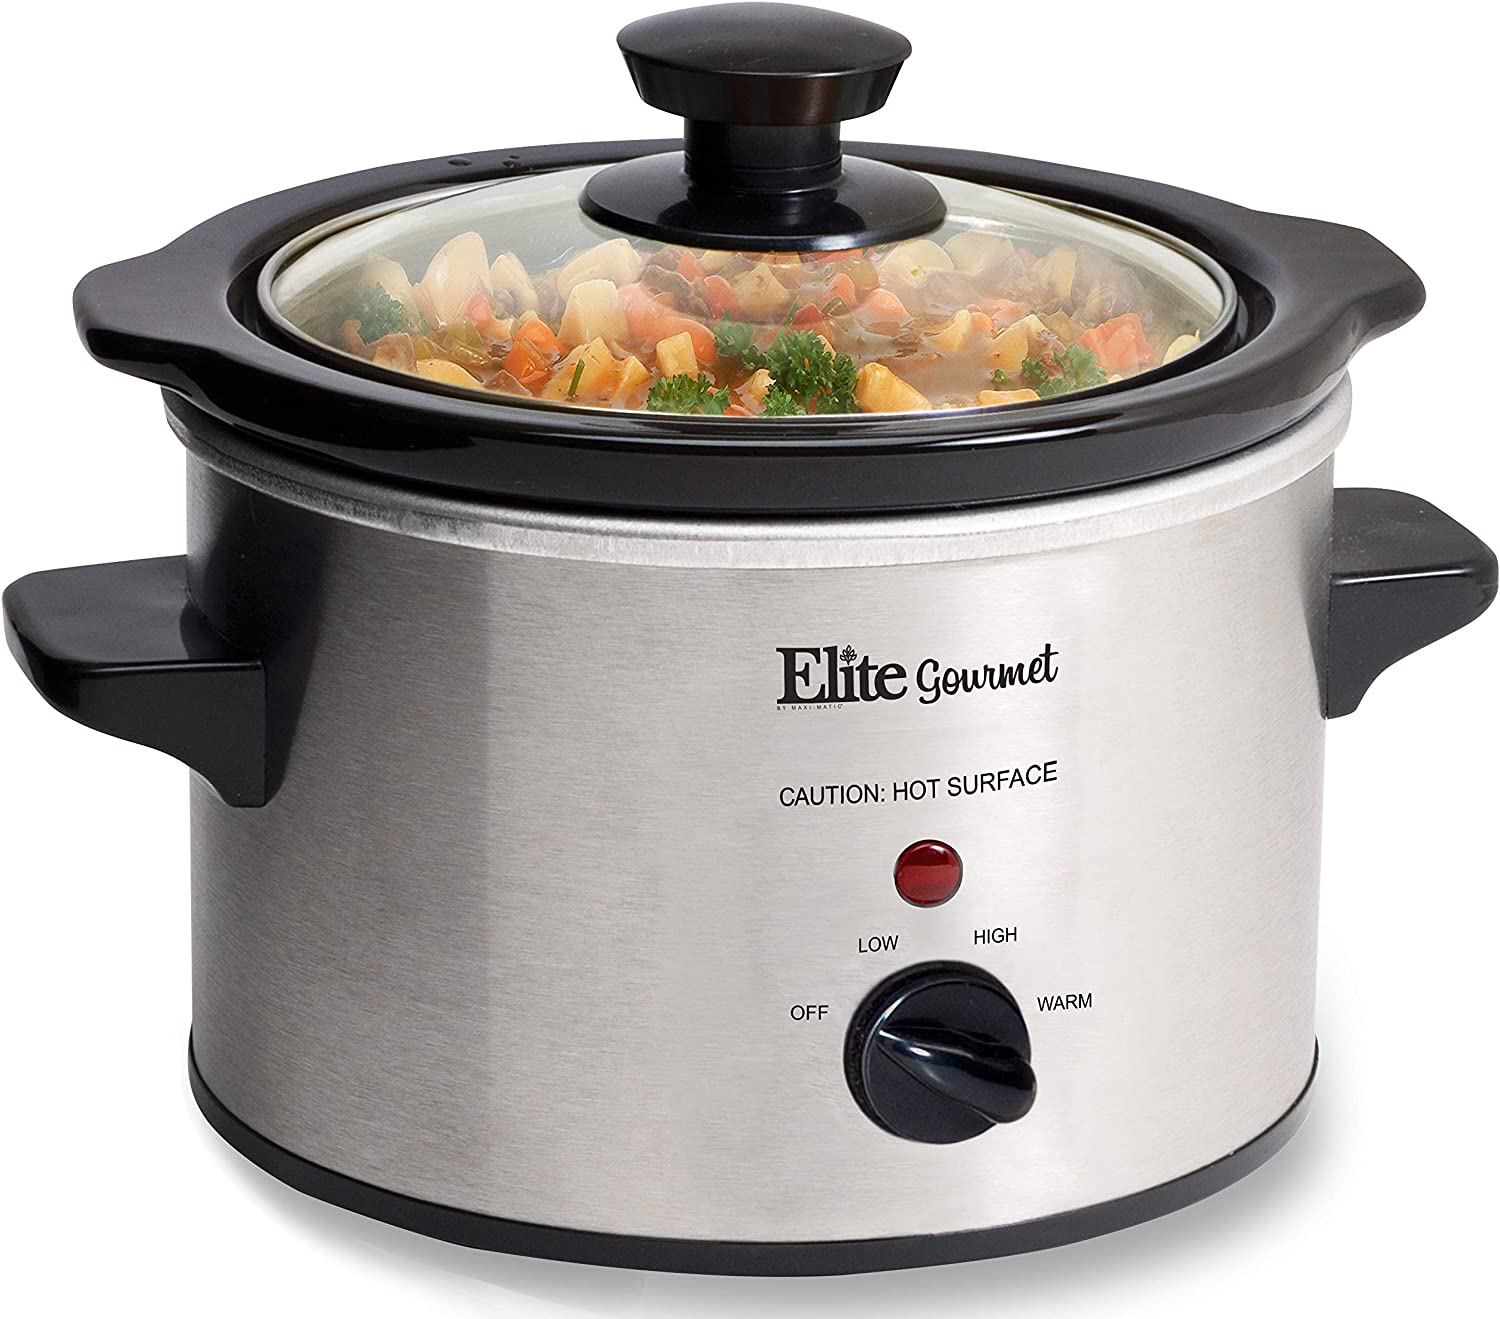 Elite Gourmet Lid & Ceramic Pot Slow Cooker with Adjustable Temp, Entrees, Sauces, Stews & Dips, Dishwasher Safe Glass Lid & Crock, 1.5 Quart, Stainless Steel